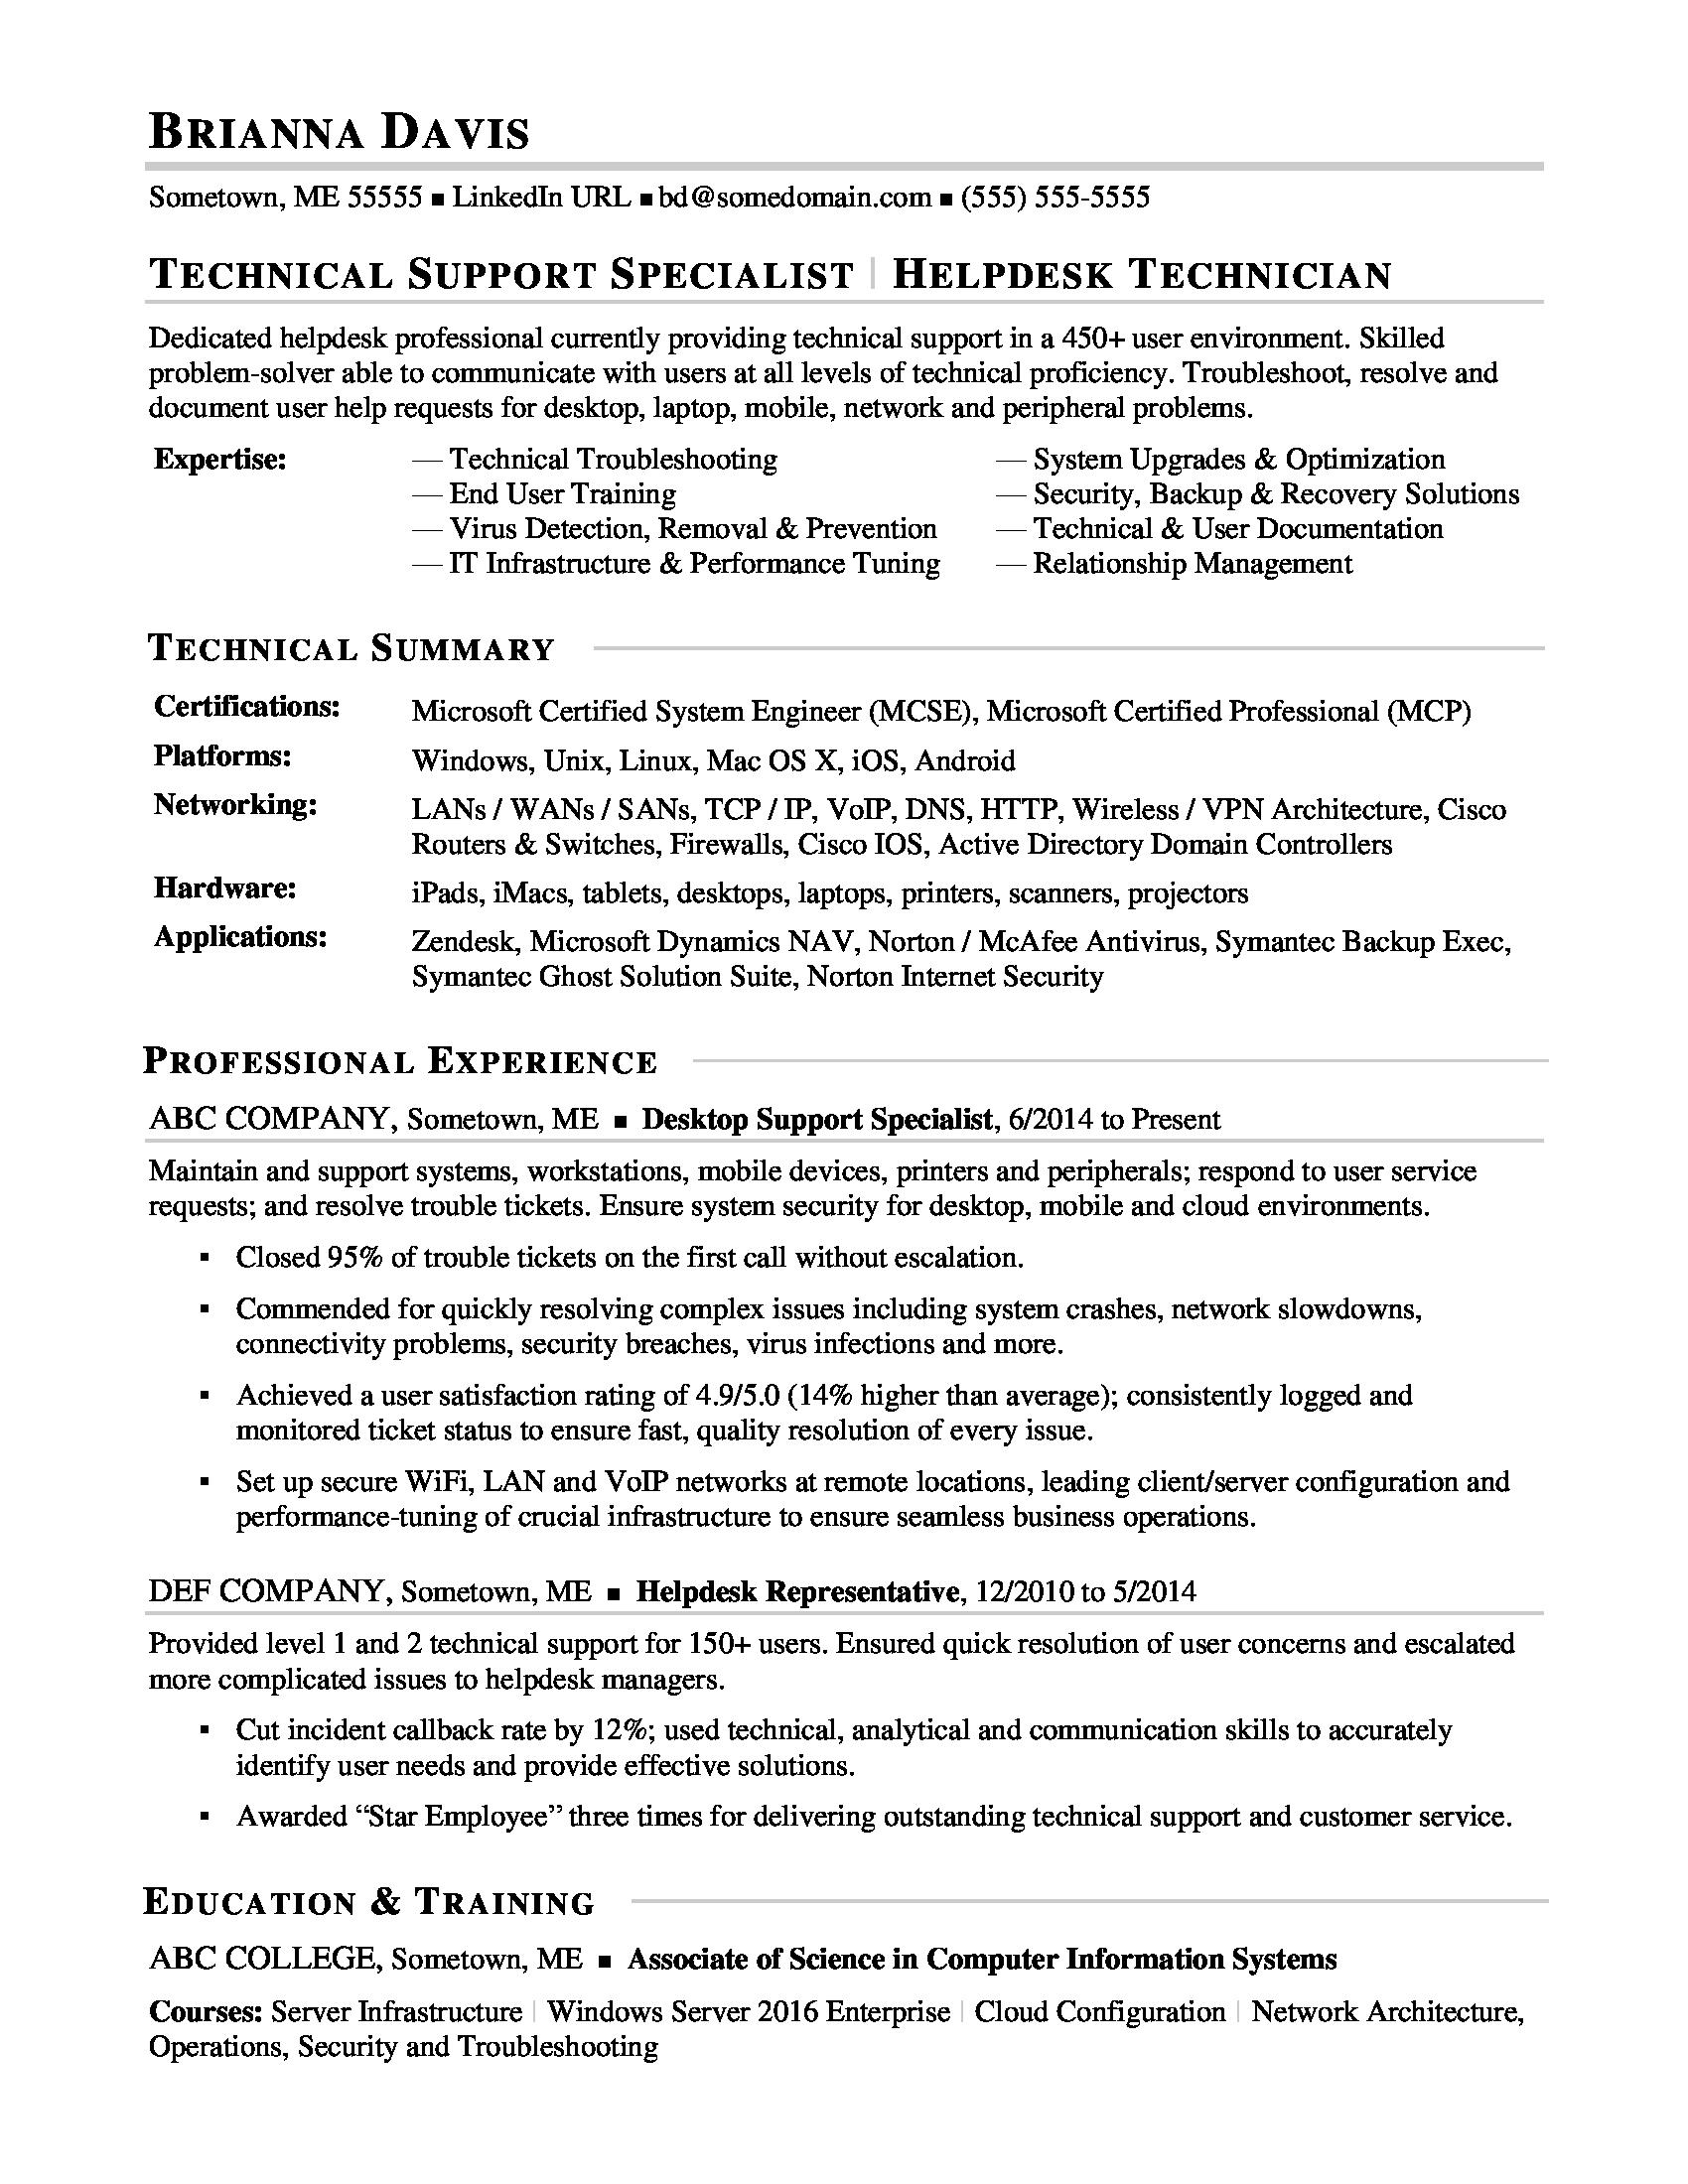 Great Sample Resume For Experienced IT Help Desk Employee On Help With Resume